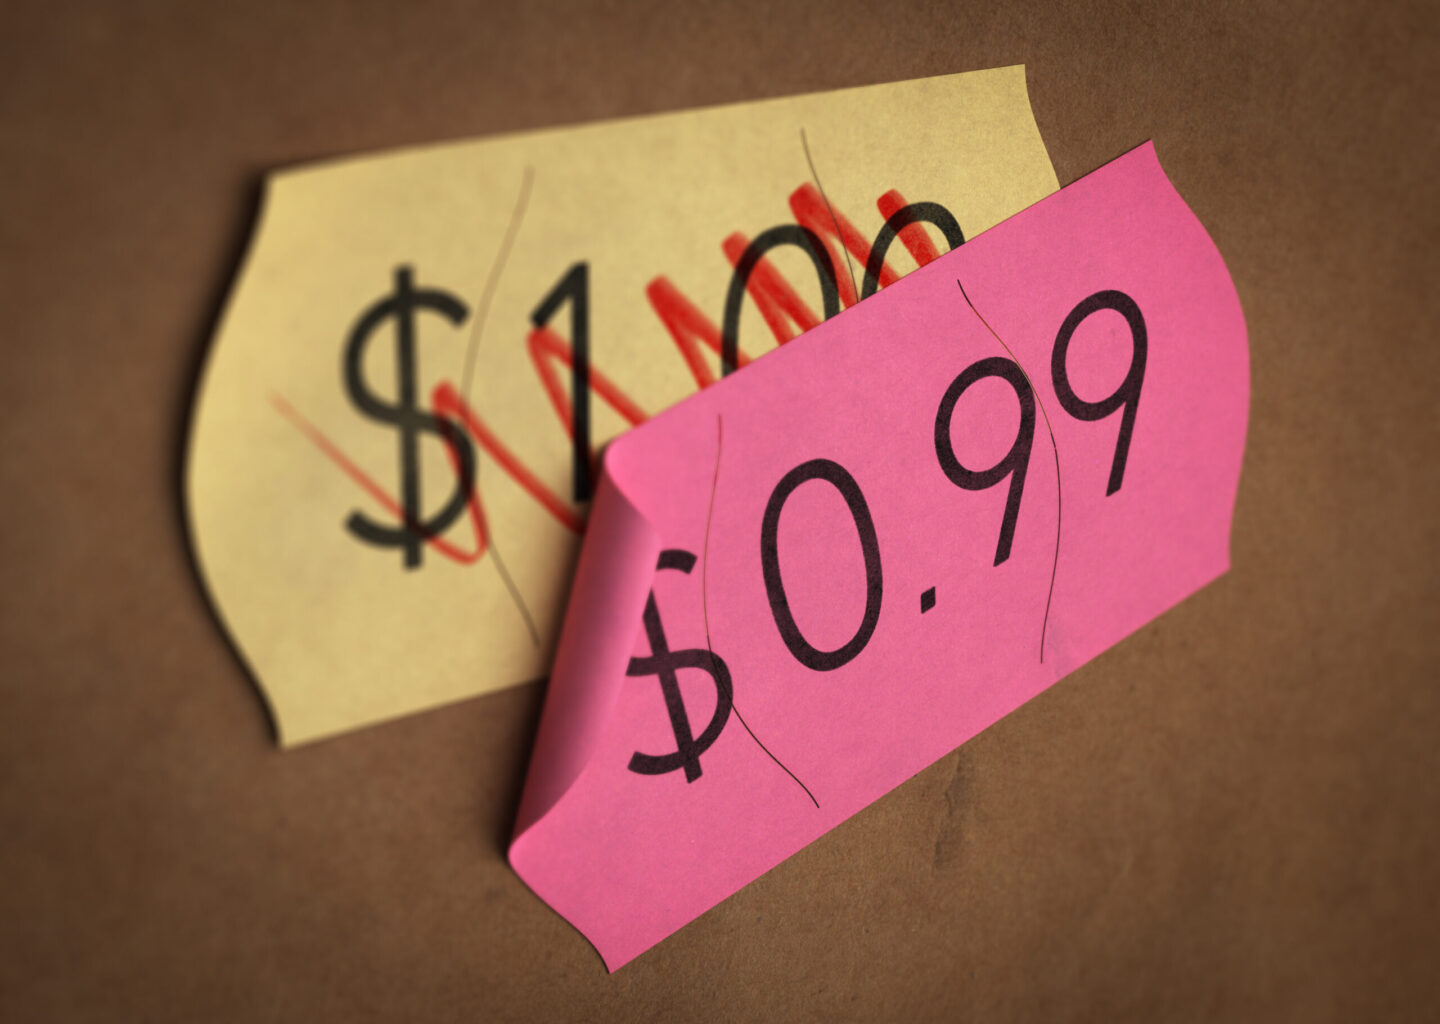 Quick 5-Step Guide in Finding The Right Price For Retail Products